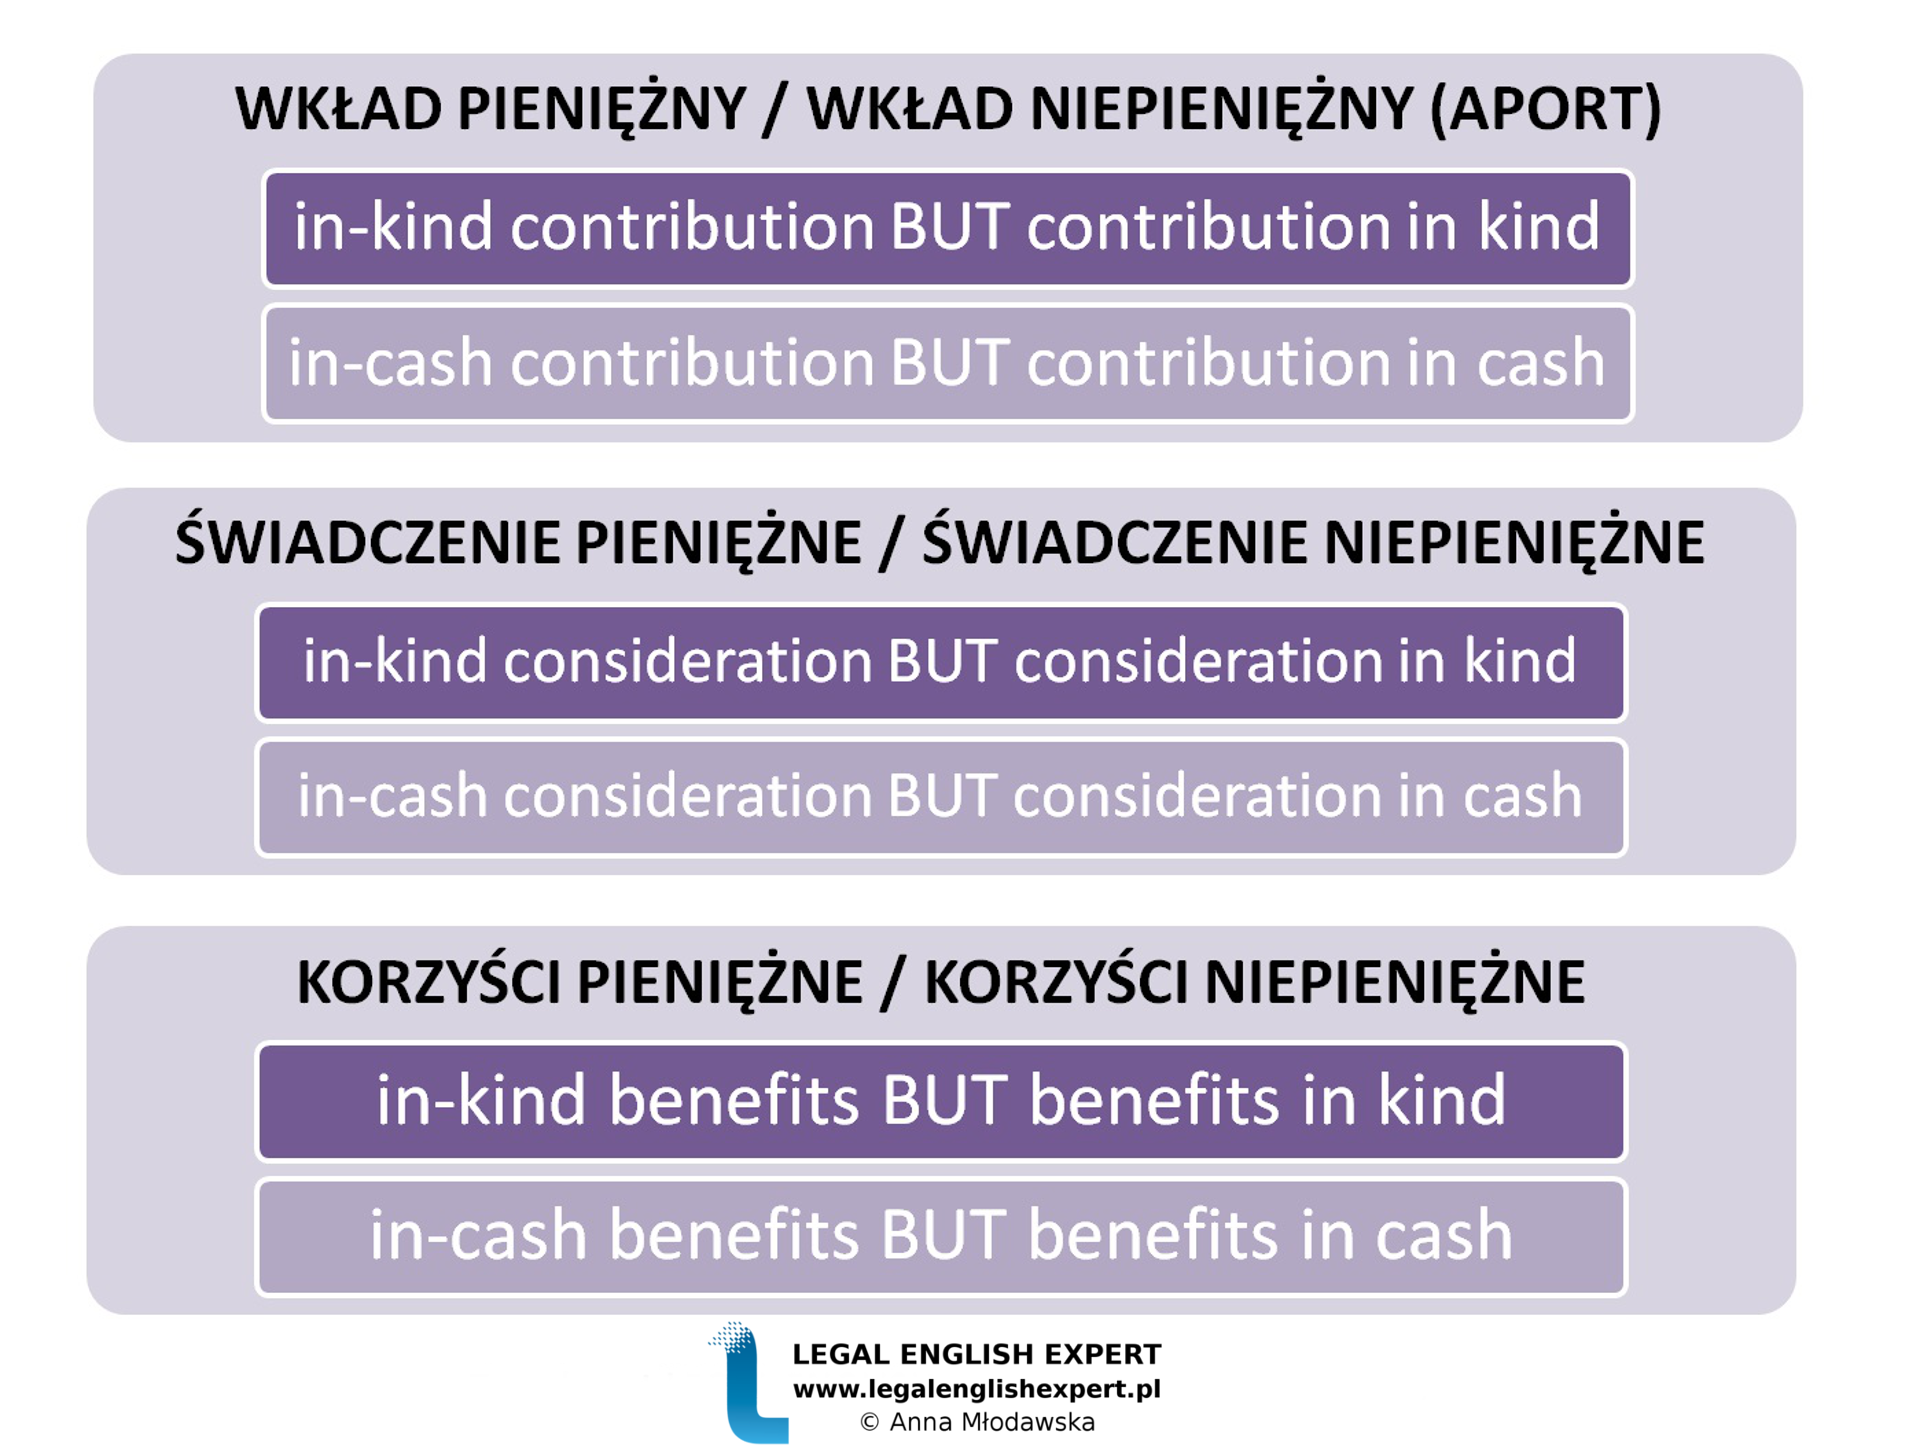 LEGAL ENGLISH EXPERT - infografika_51 - wkład pieniężny